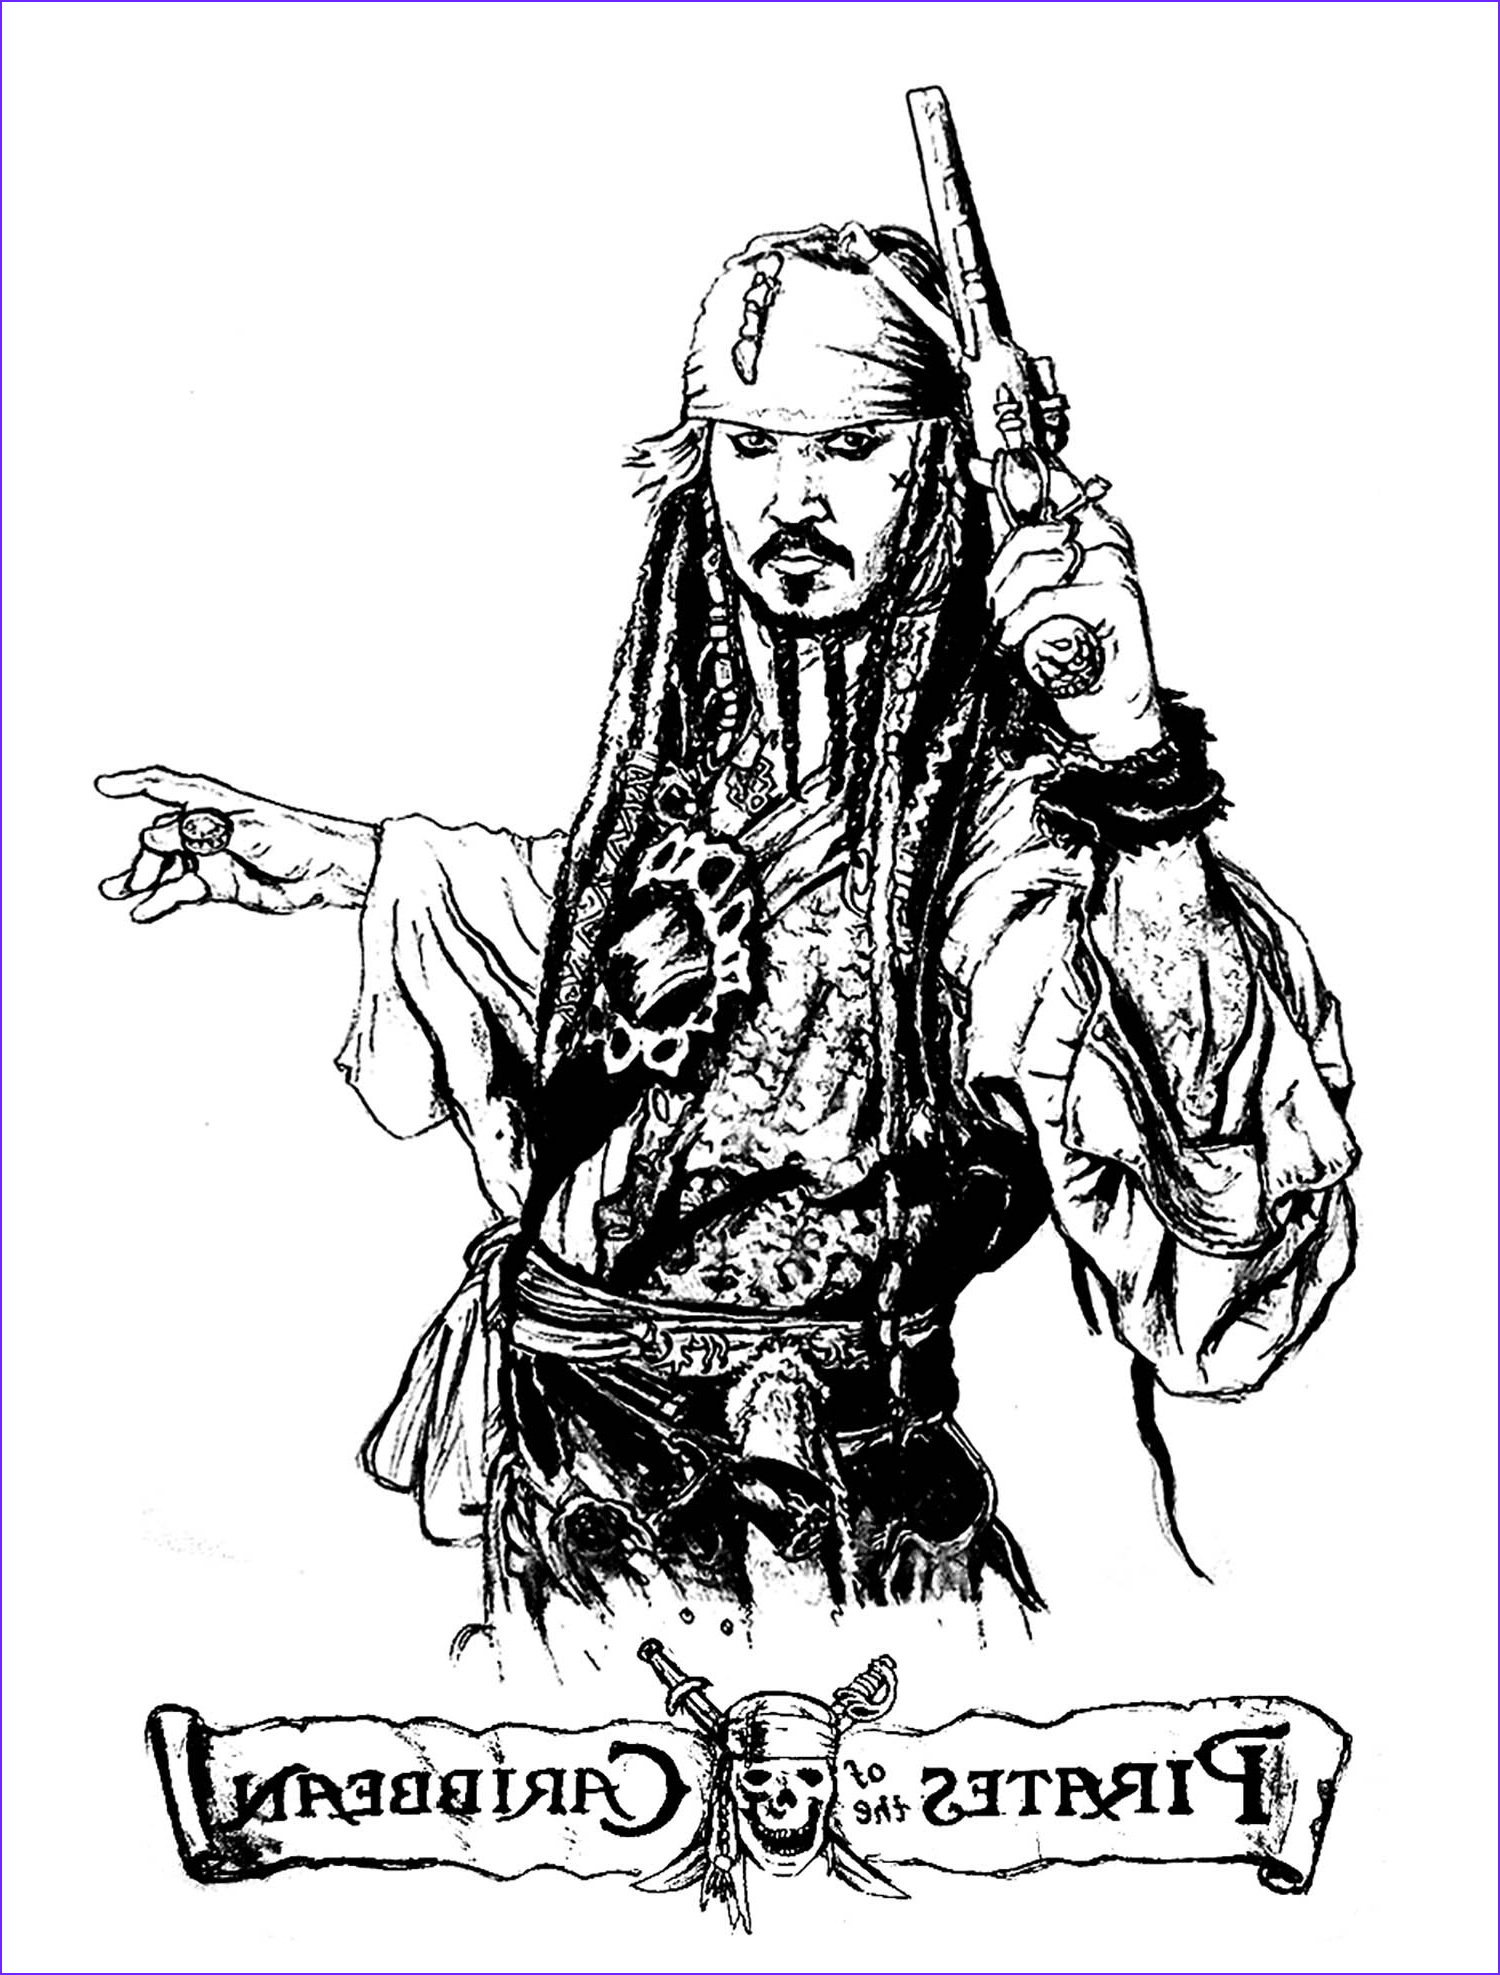 Pirate Coloring Page for Adults Luxury Collection Pirates Of the Caribbean Movies Adult Coloring Pages